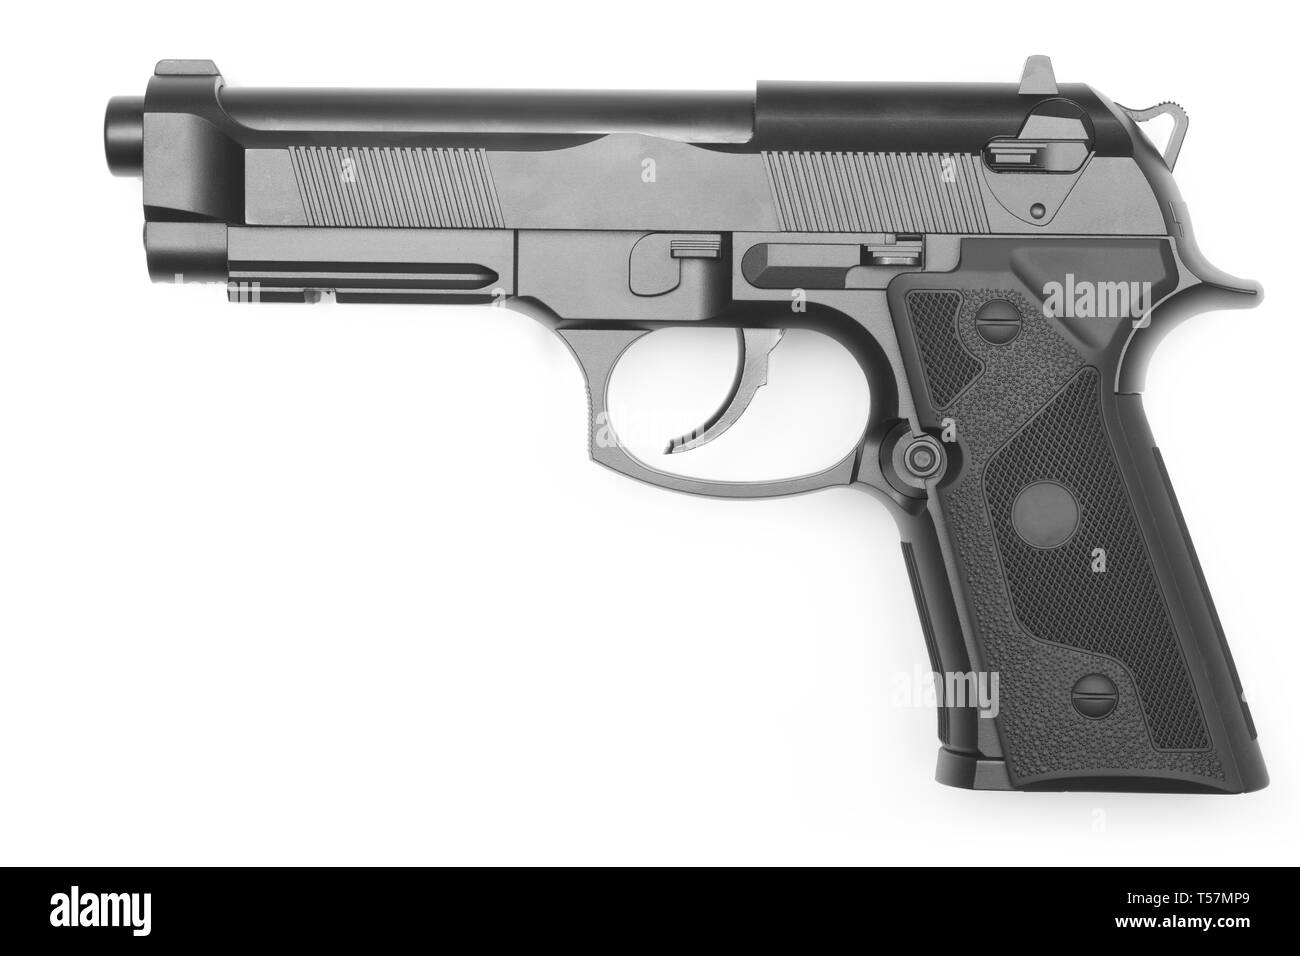 Airgun Stock Photos & Airgun Stock Images - Alamy